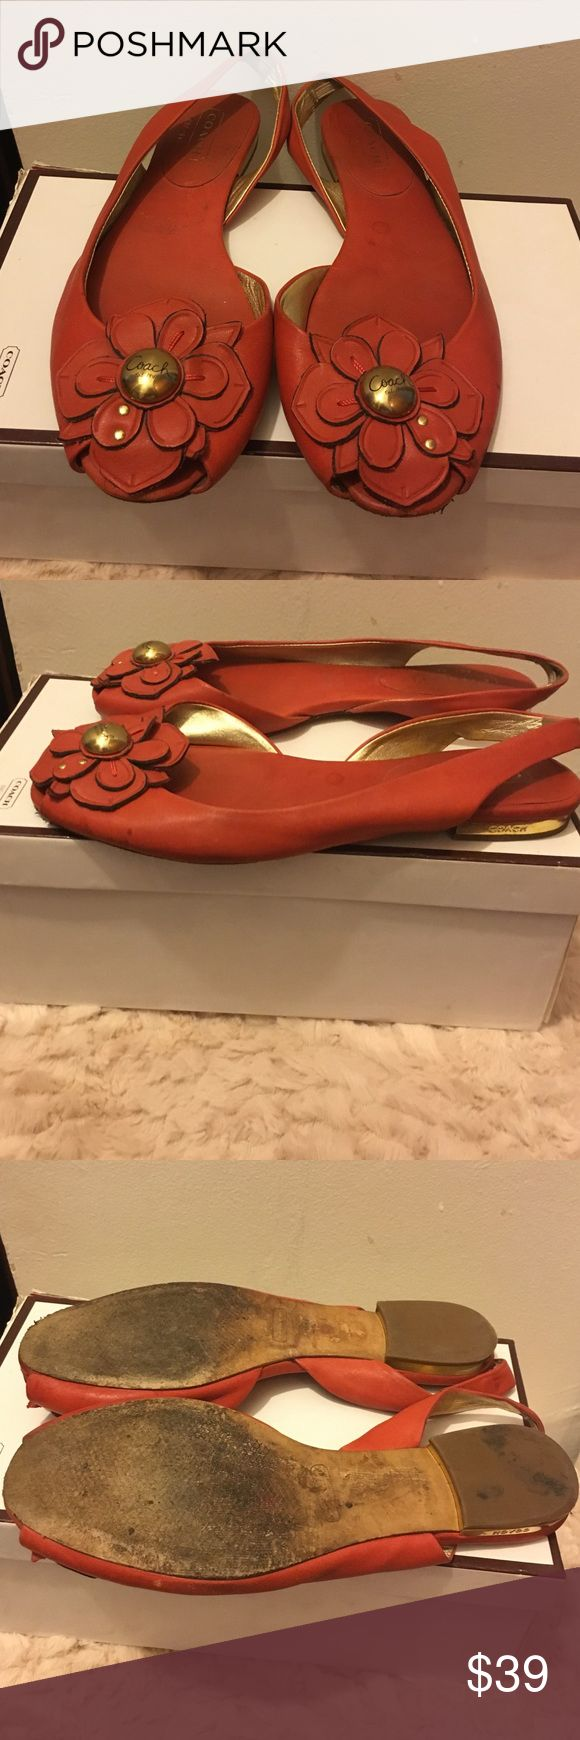 Beautiful coach flats Beautiful orange flower coach flats with gold bottom! Comes with box Coach Shoes Sandals